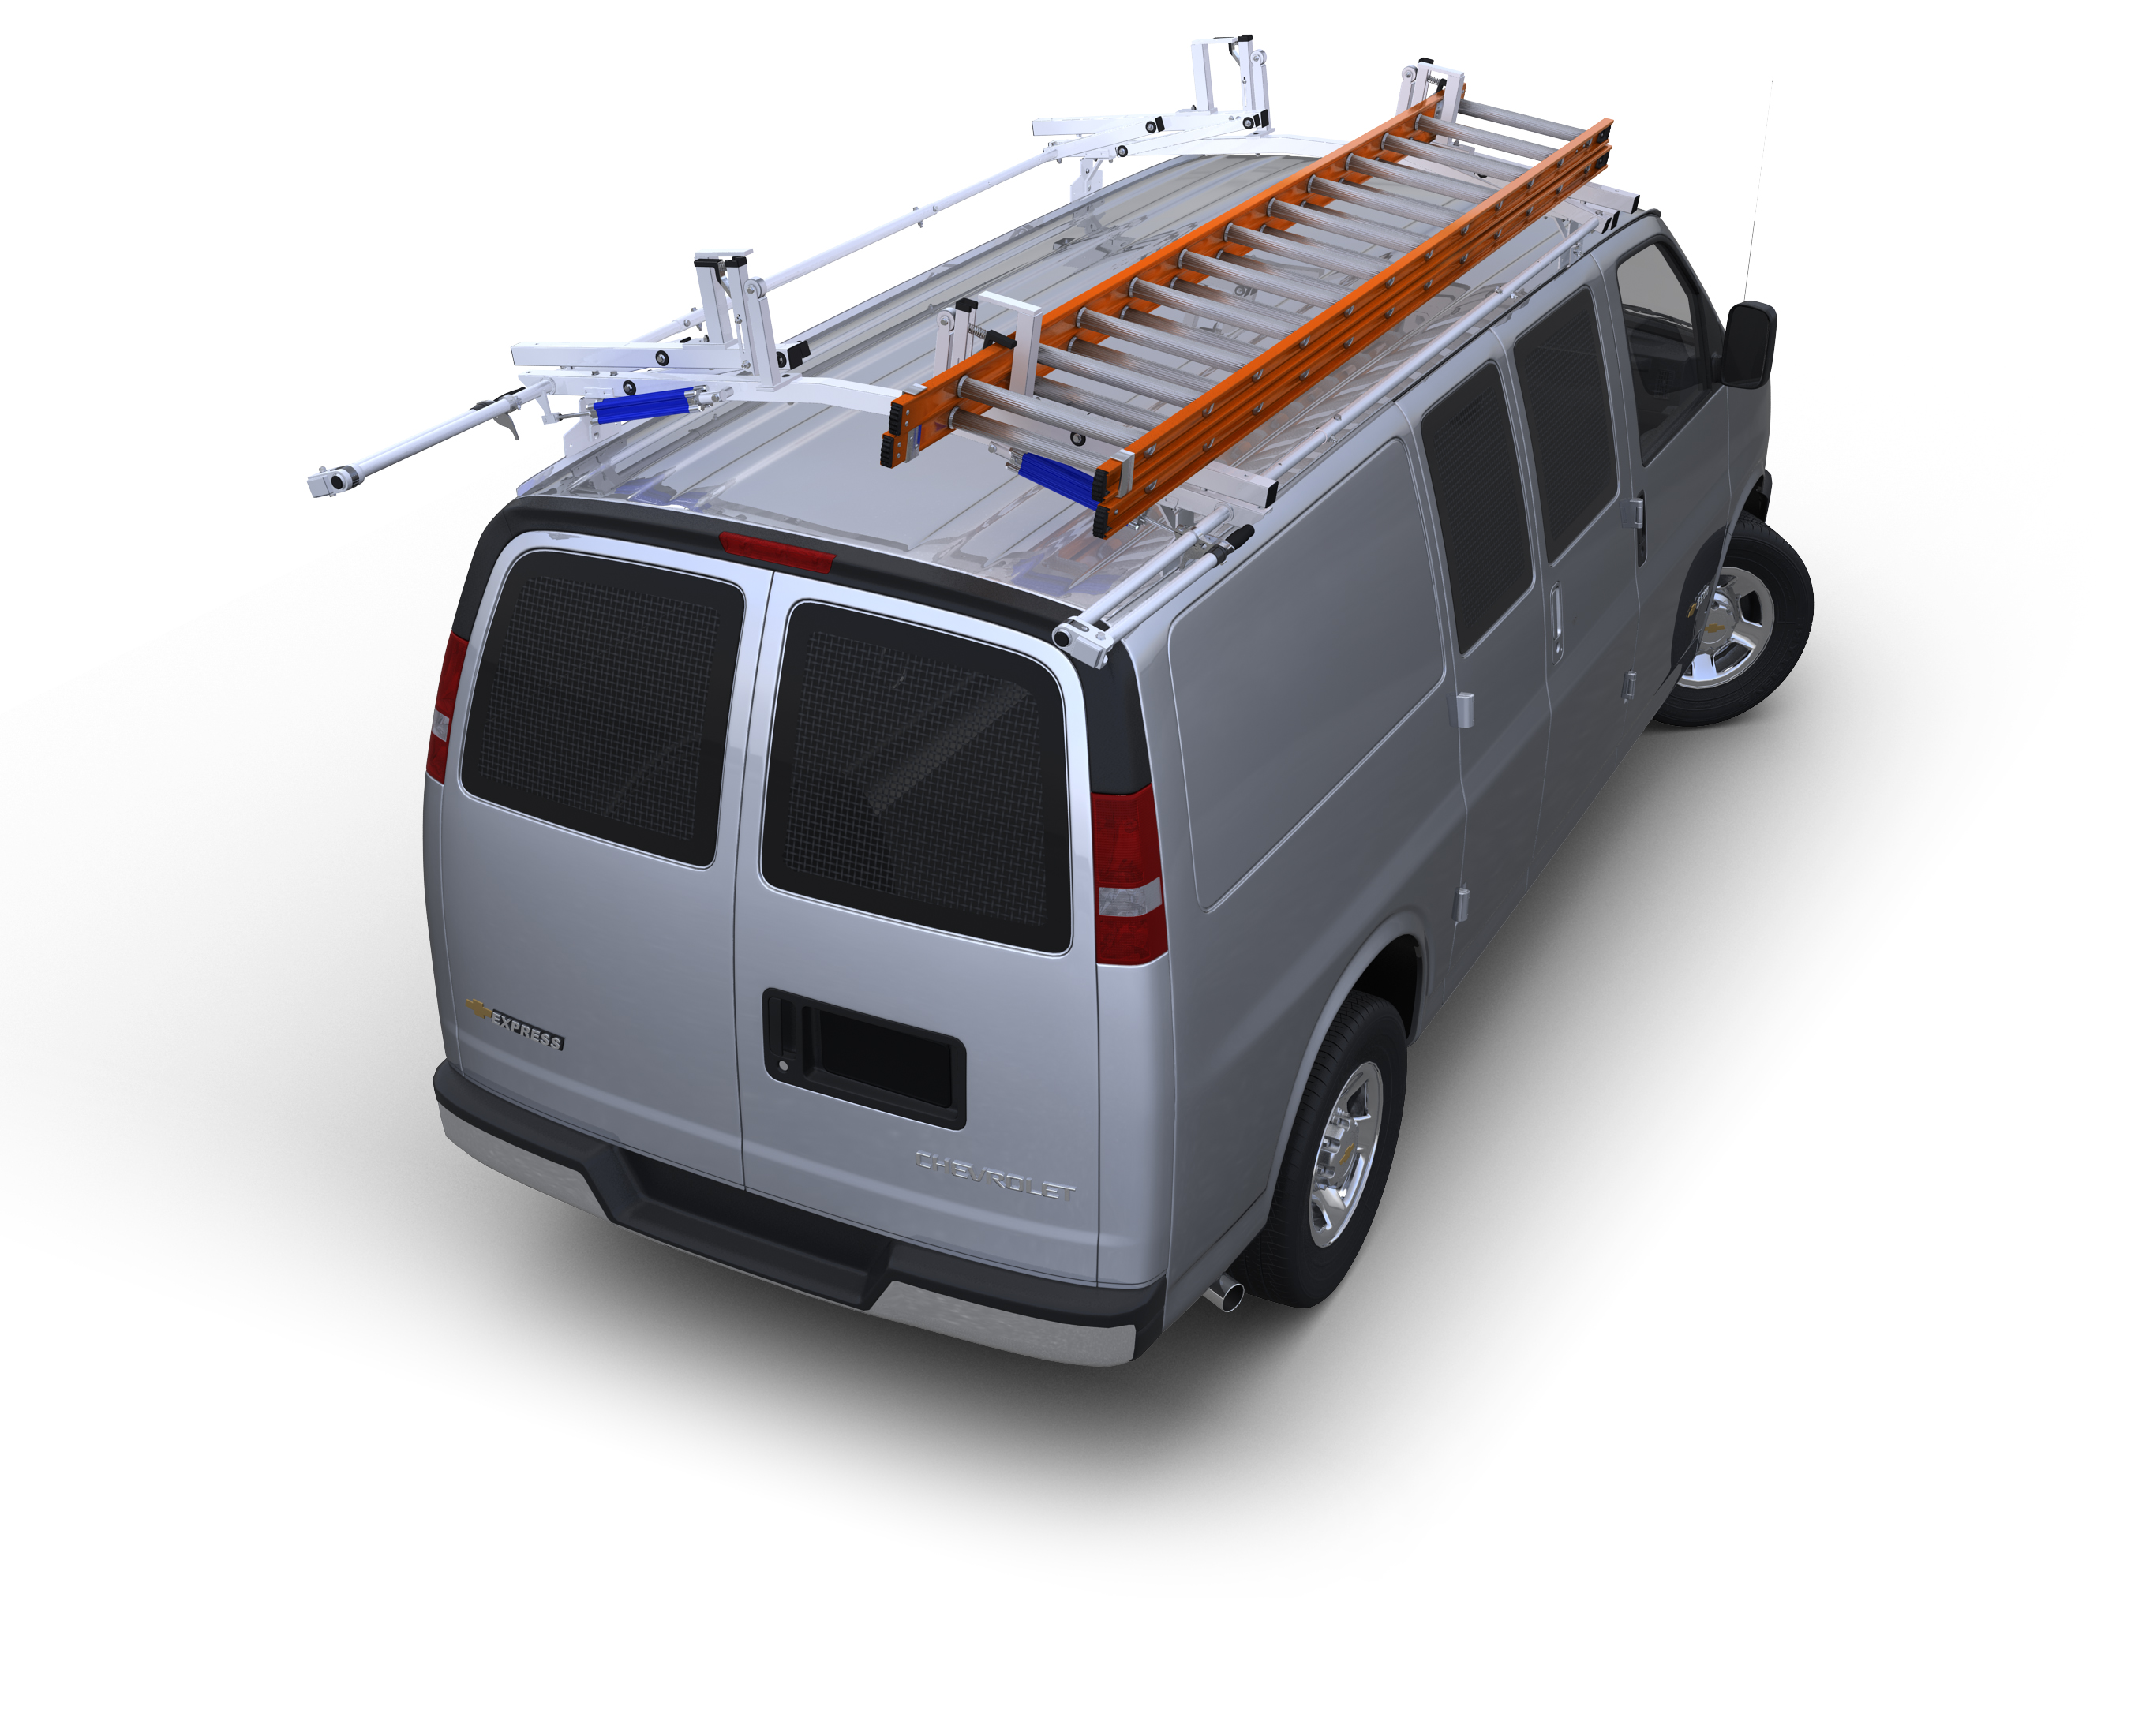 Topper Hot Dip Galvanized 10' Cargo Carrier Rack for the Nissan NV High Roof Van